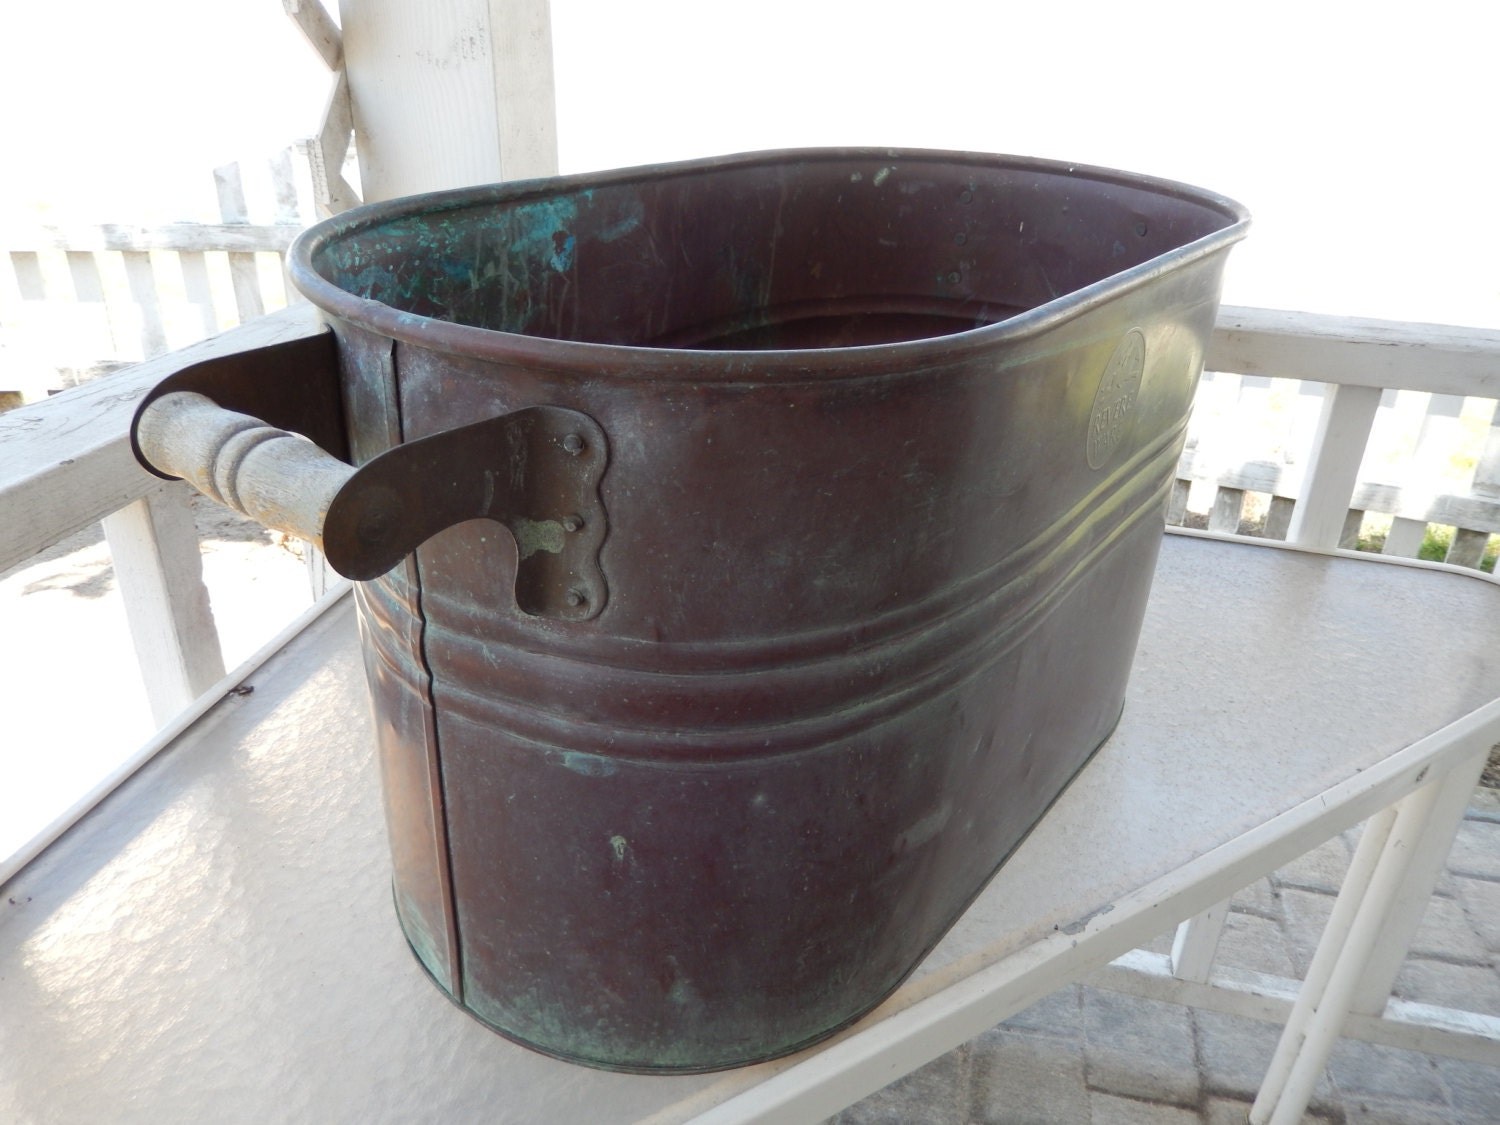 Double Wash Tub : Vintage Copper Wash Tub/Double Boiler with Handles by Revere